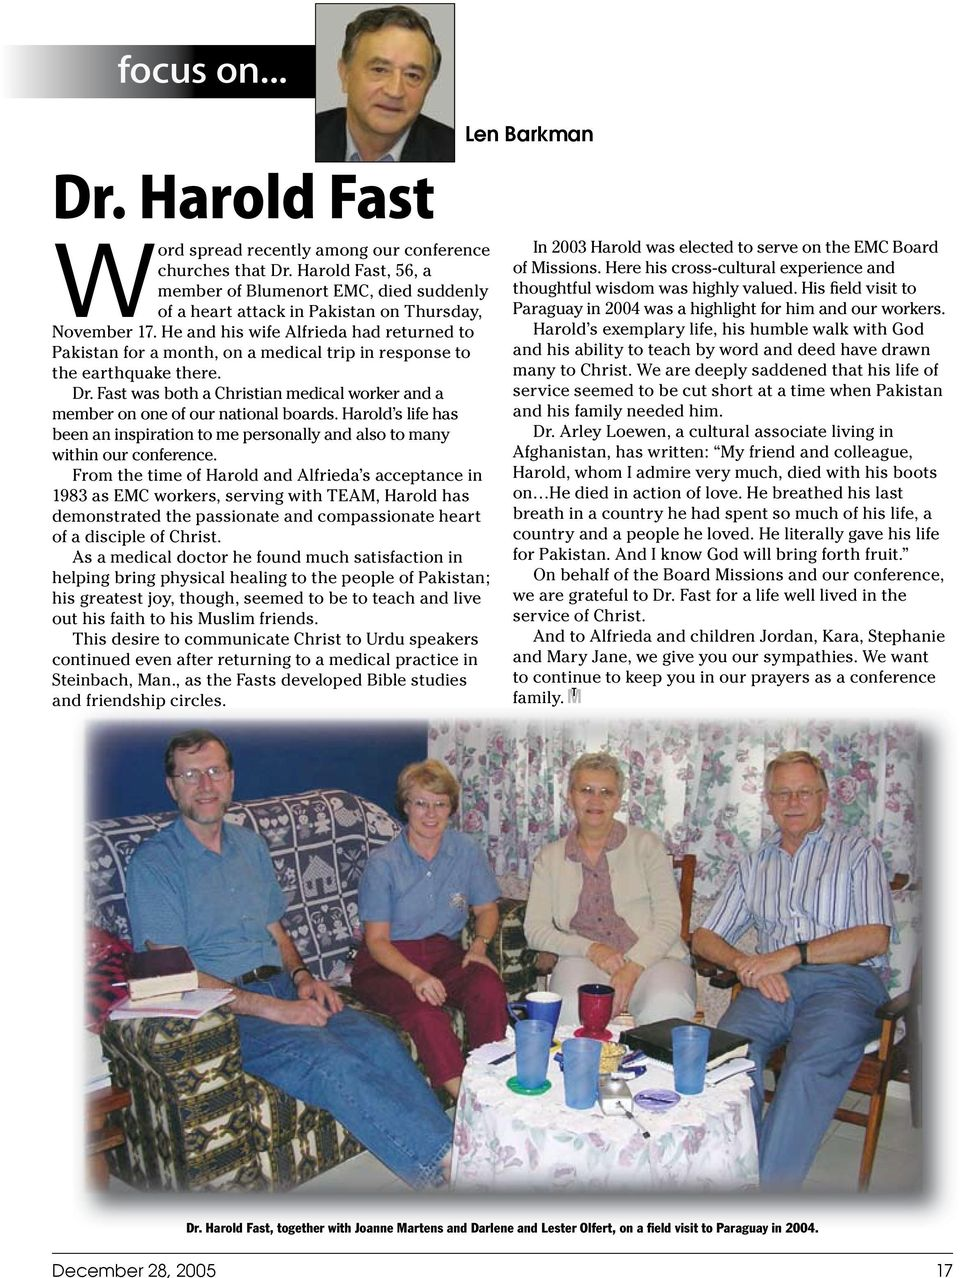 Fast was both a Christian medical worker and a member on one of our national boards. Harold s life has been an inspiration to me personally and also to many within our conference.